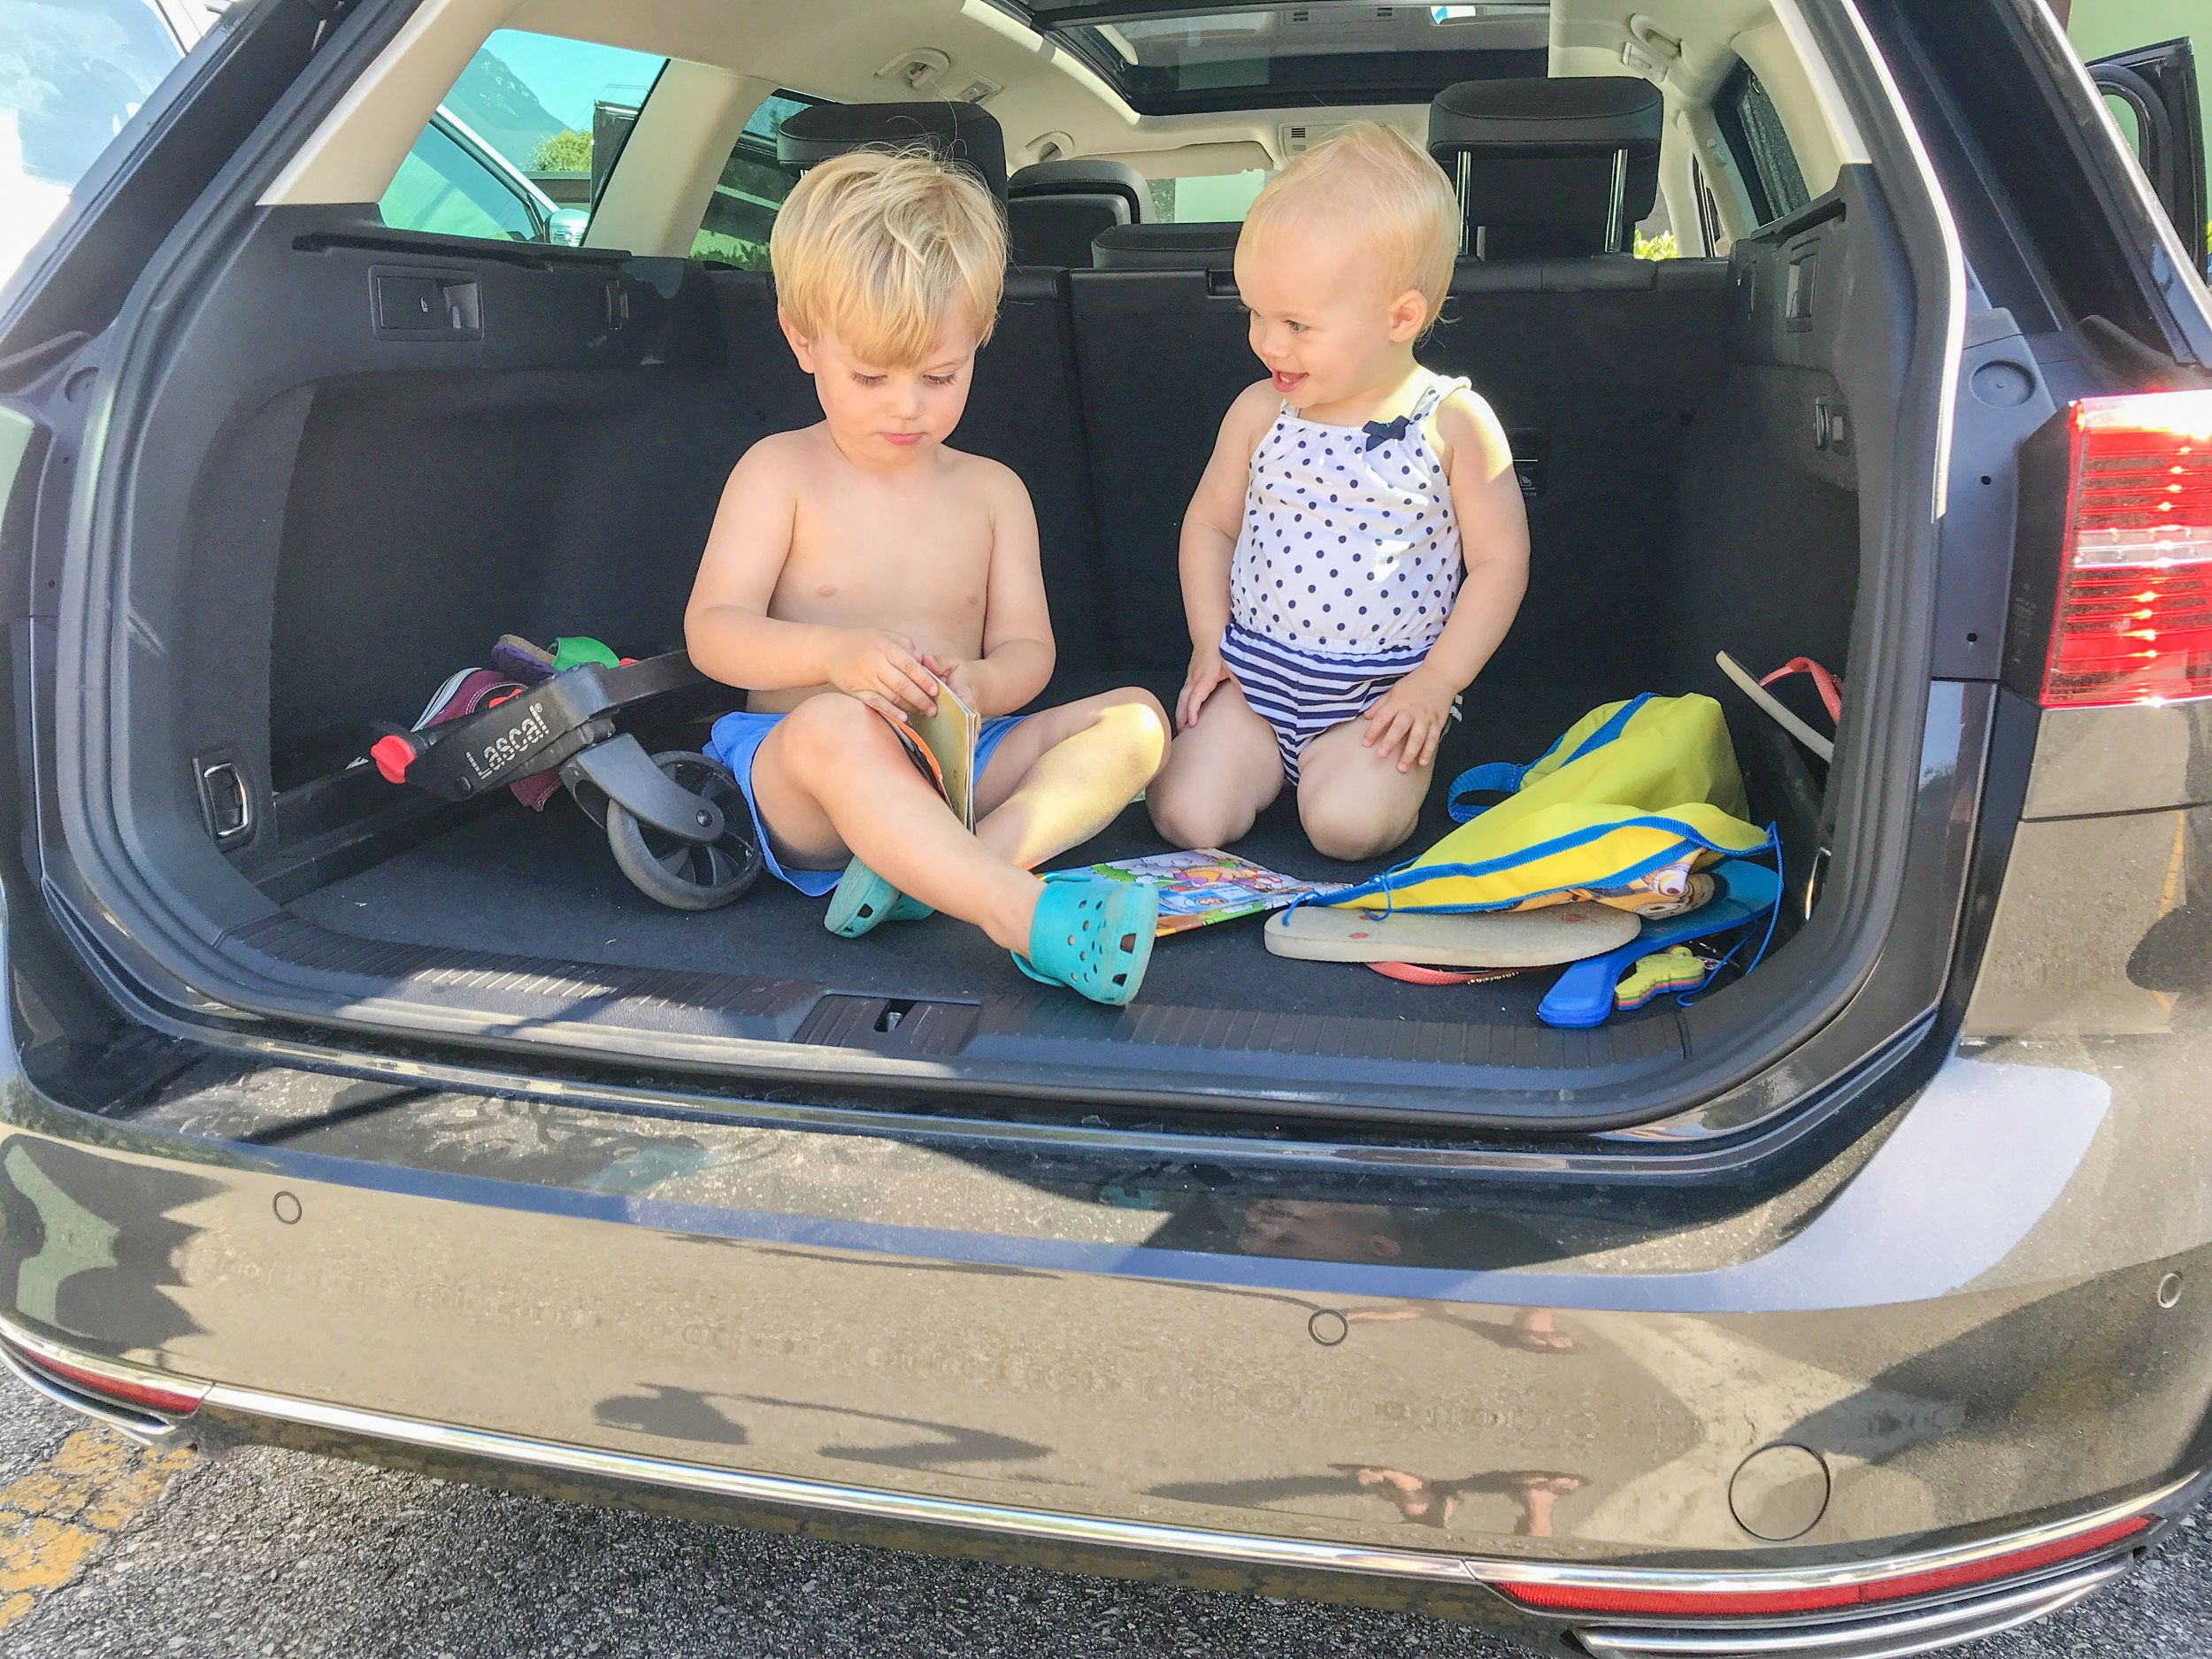 Elliot (almost 3) and amelia (17m) in the trunk after unloading the car in italy.